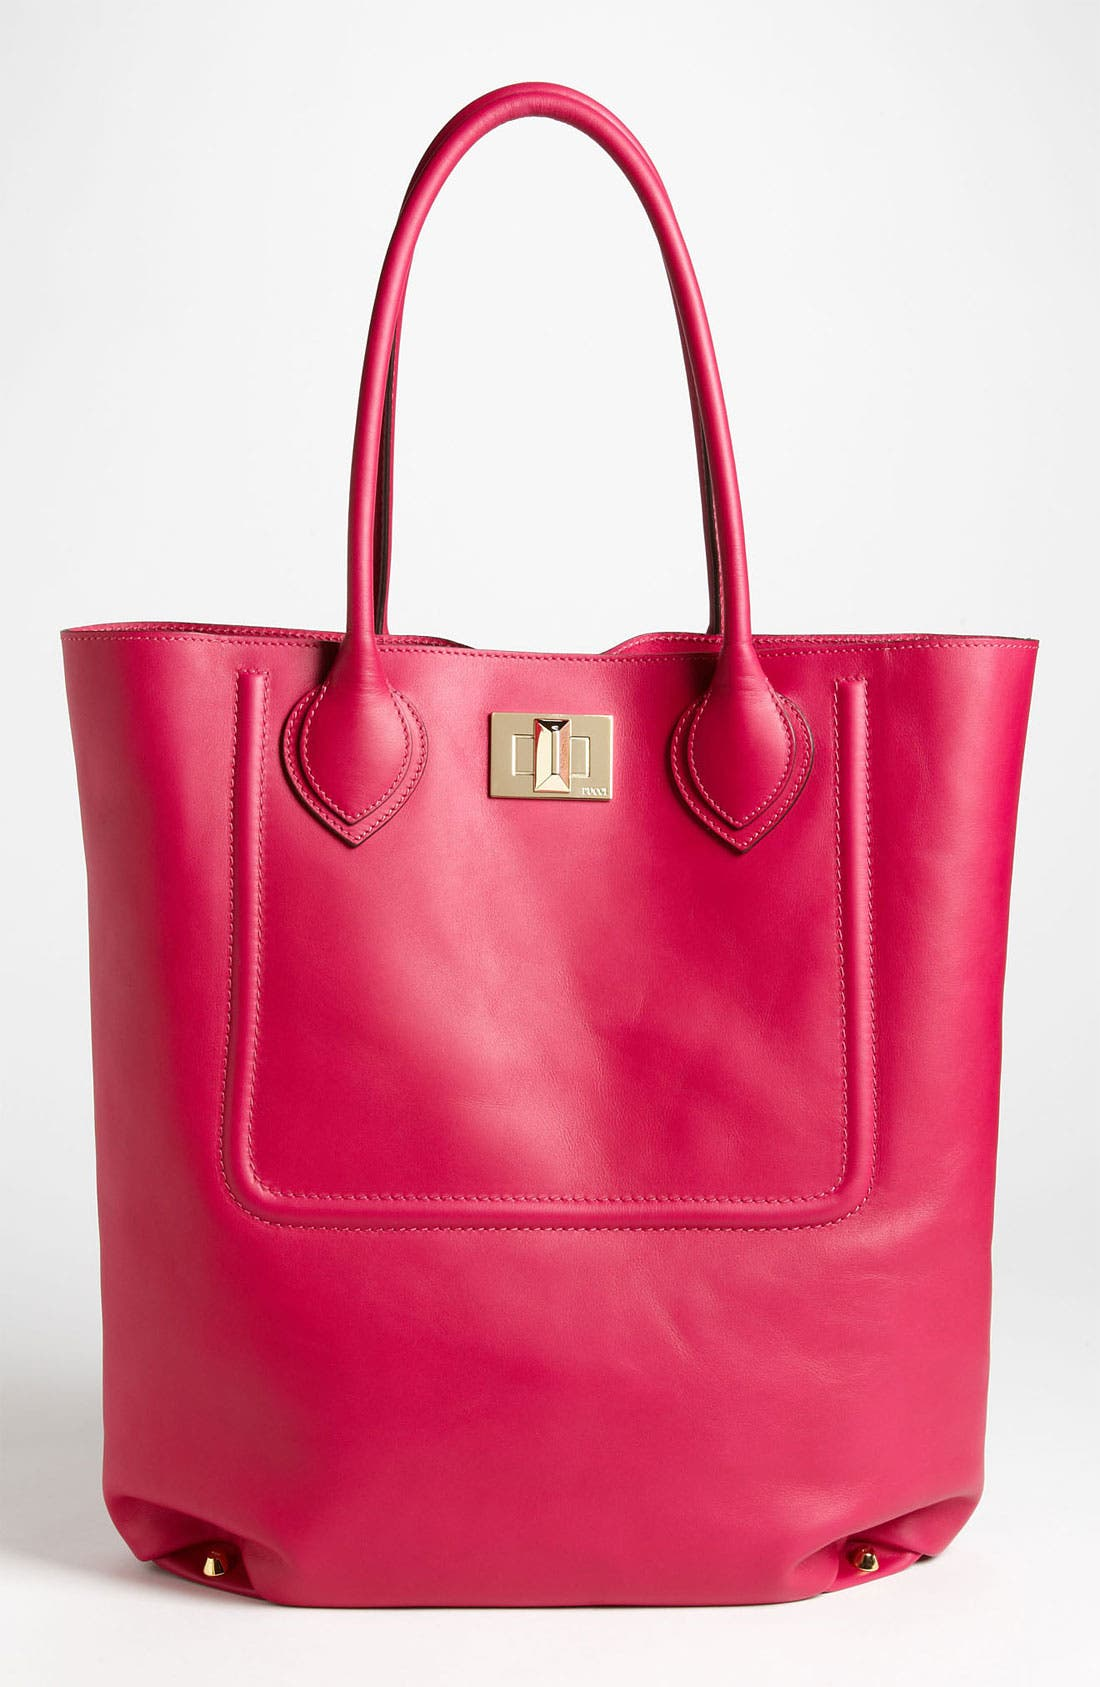 Alternate Image 1 Selected - Emilio Pucci Leather Tote